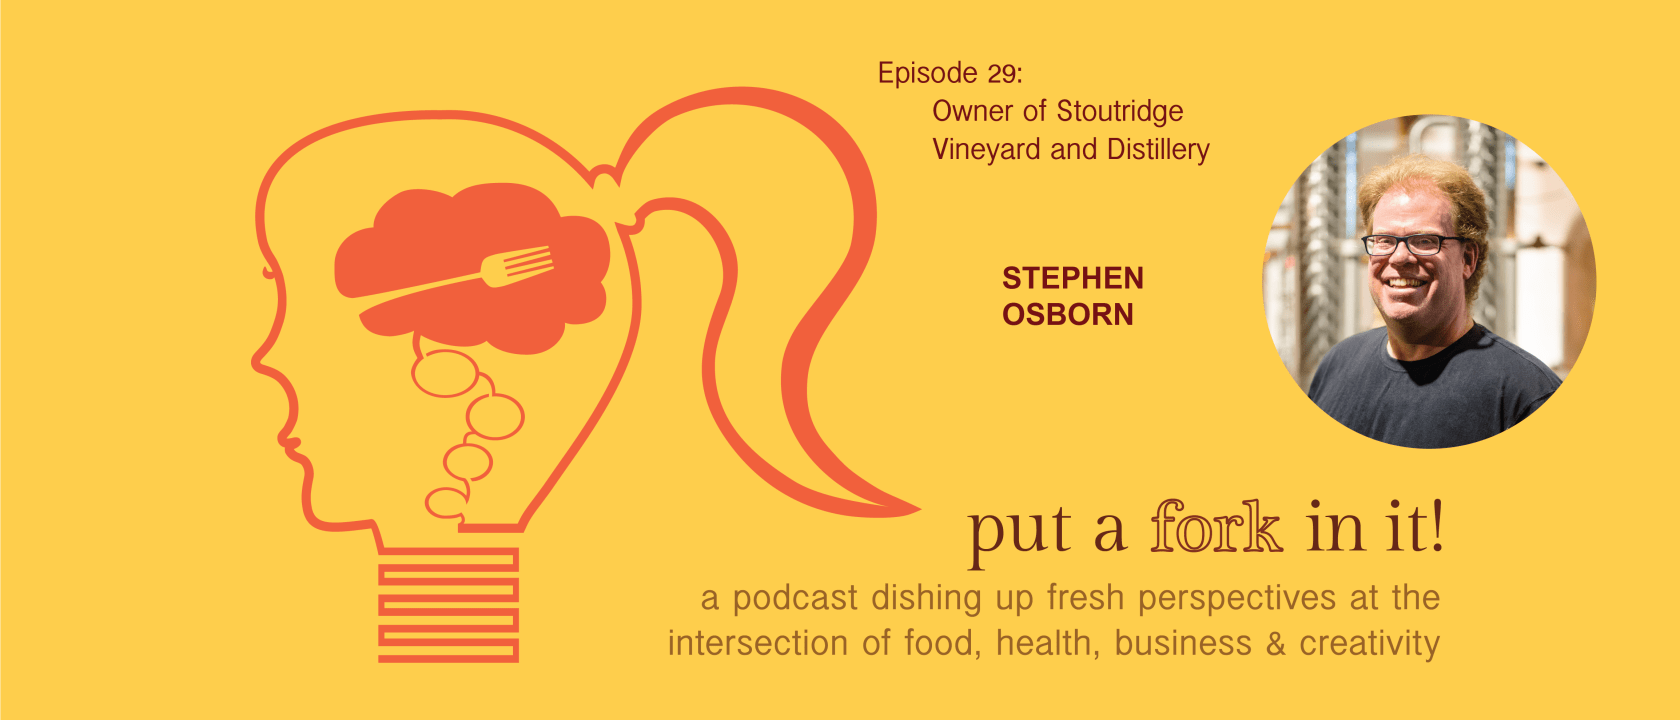 Put a Fork In It Podcast featuring Stephen Osborn of Stoutridge Vineyard